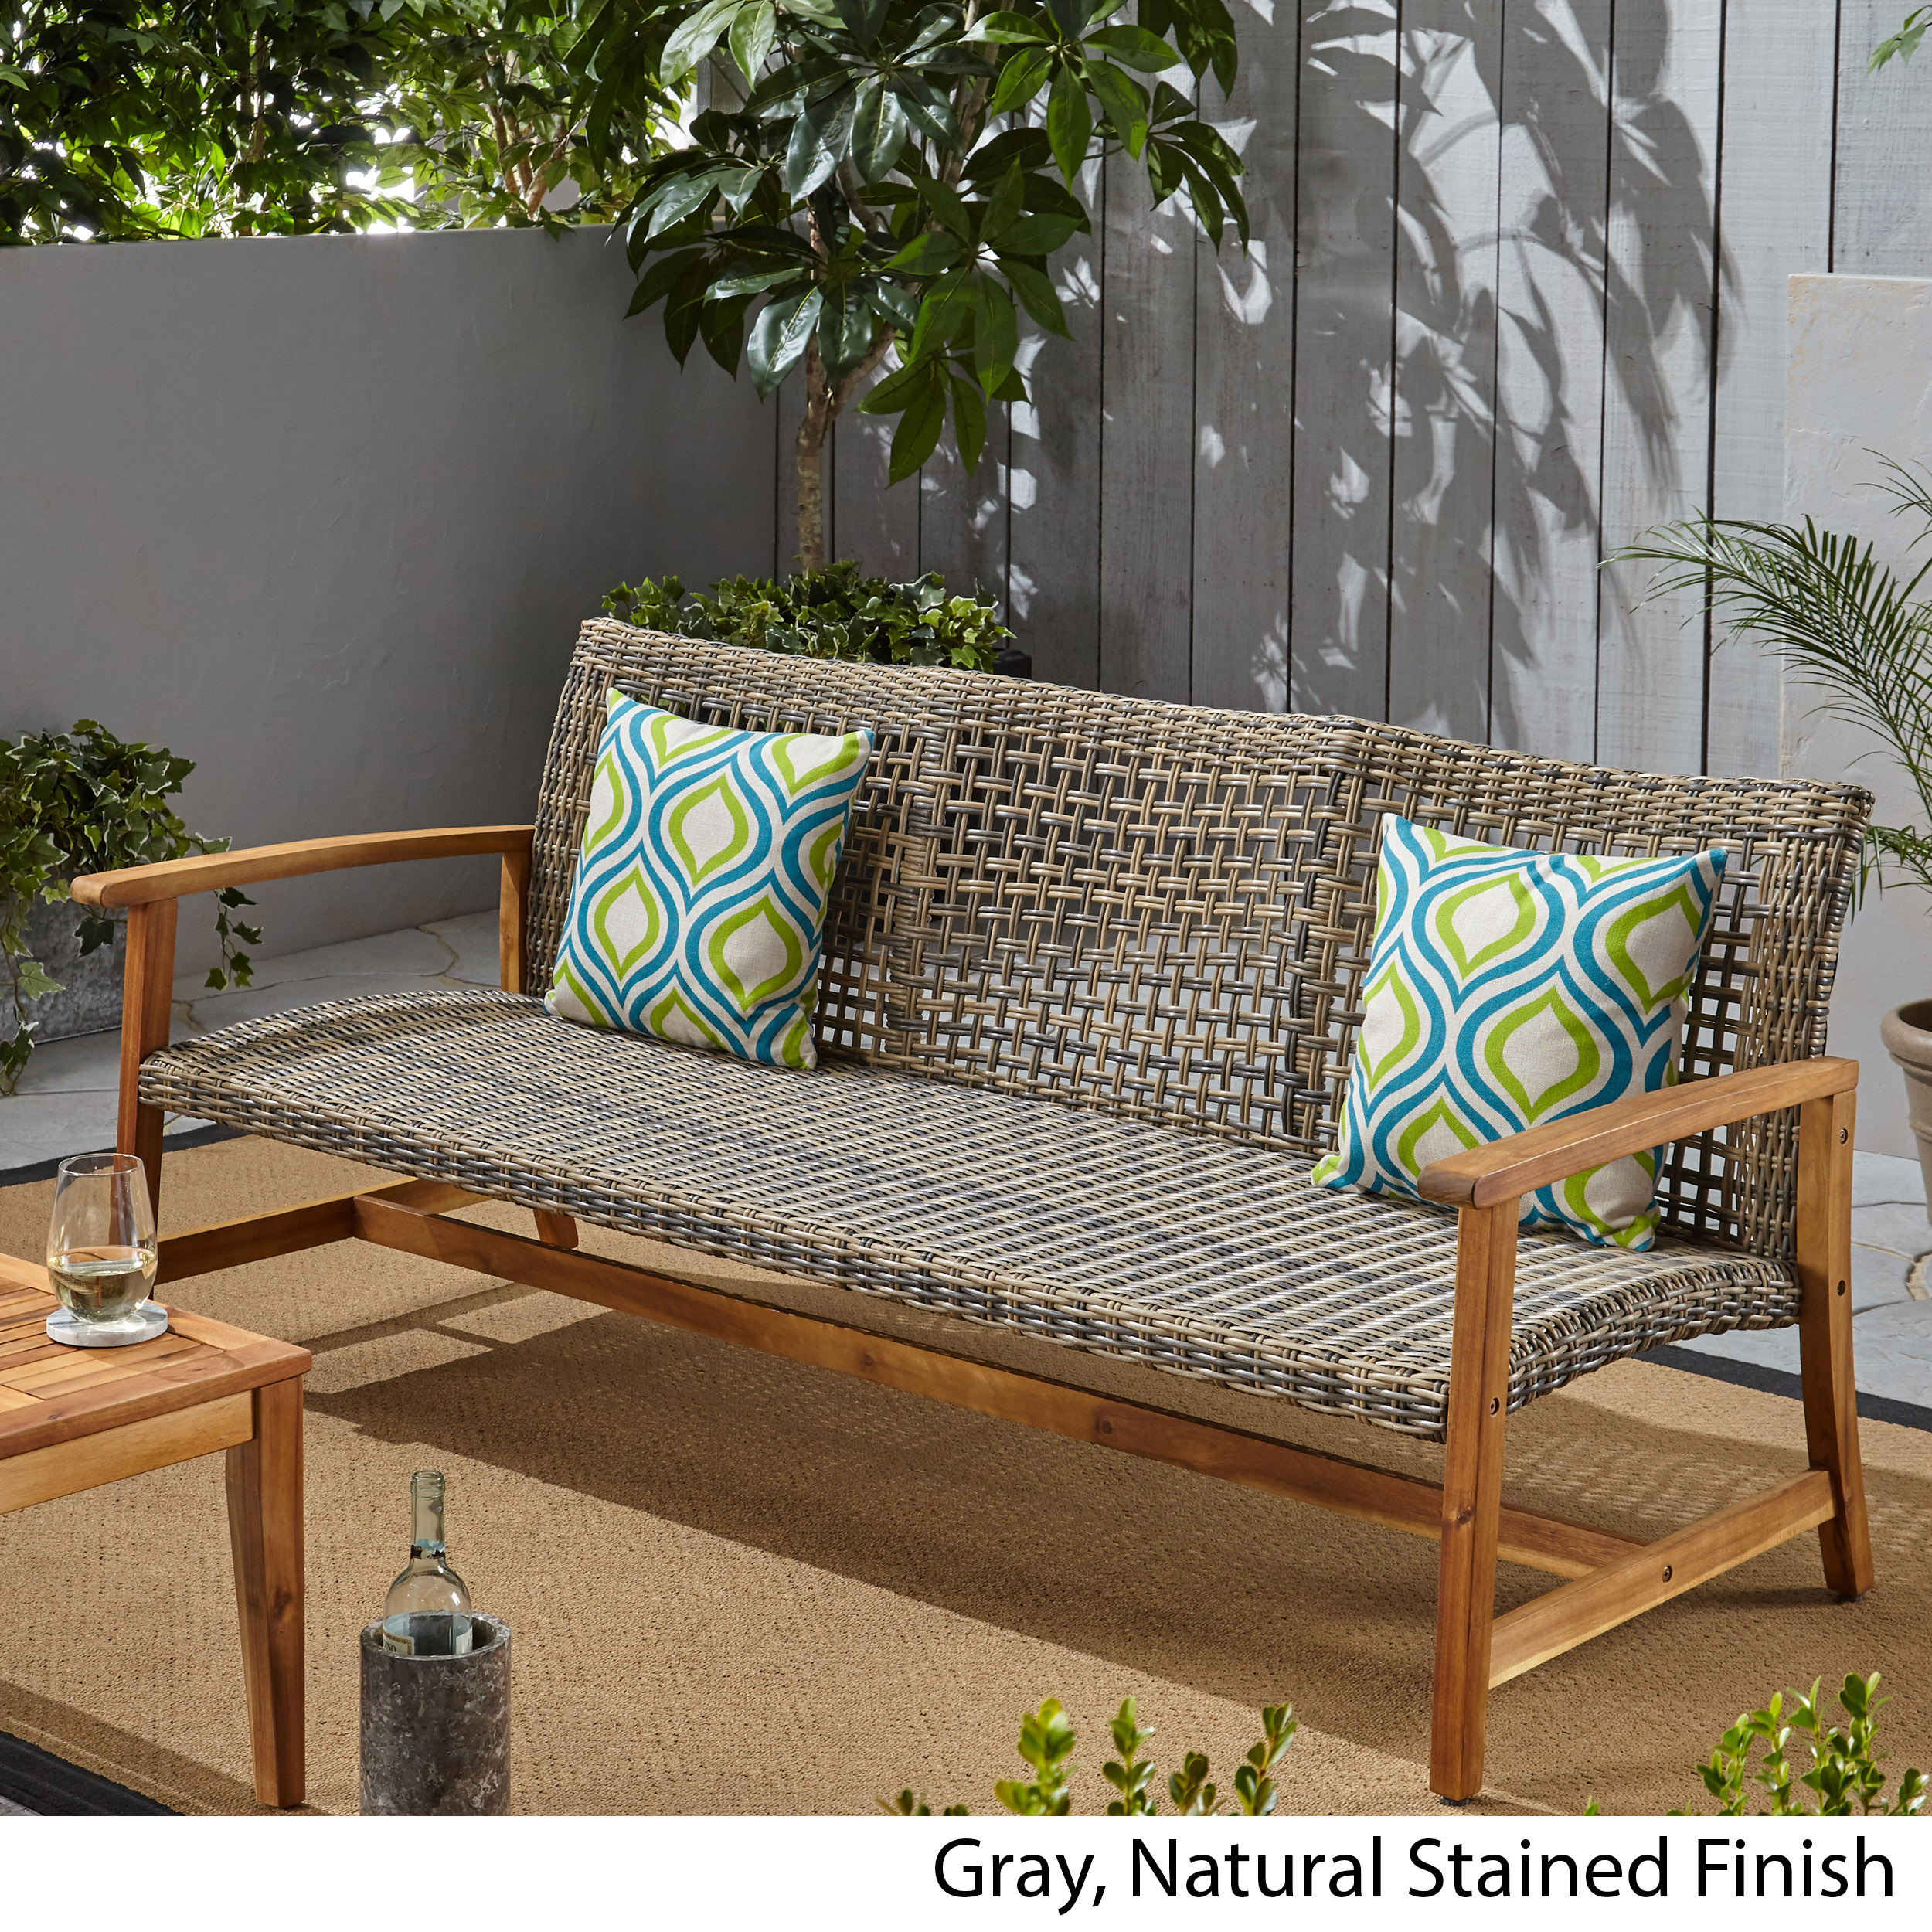 Details about Marcia Outdoor 3-Seater Wicker Weave Sofa with Acacia Wood  Frame